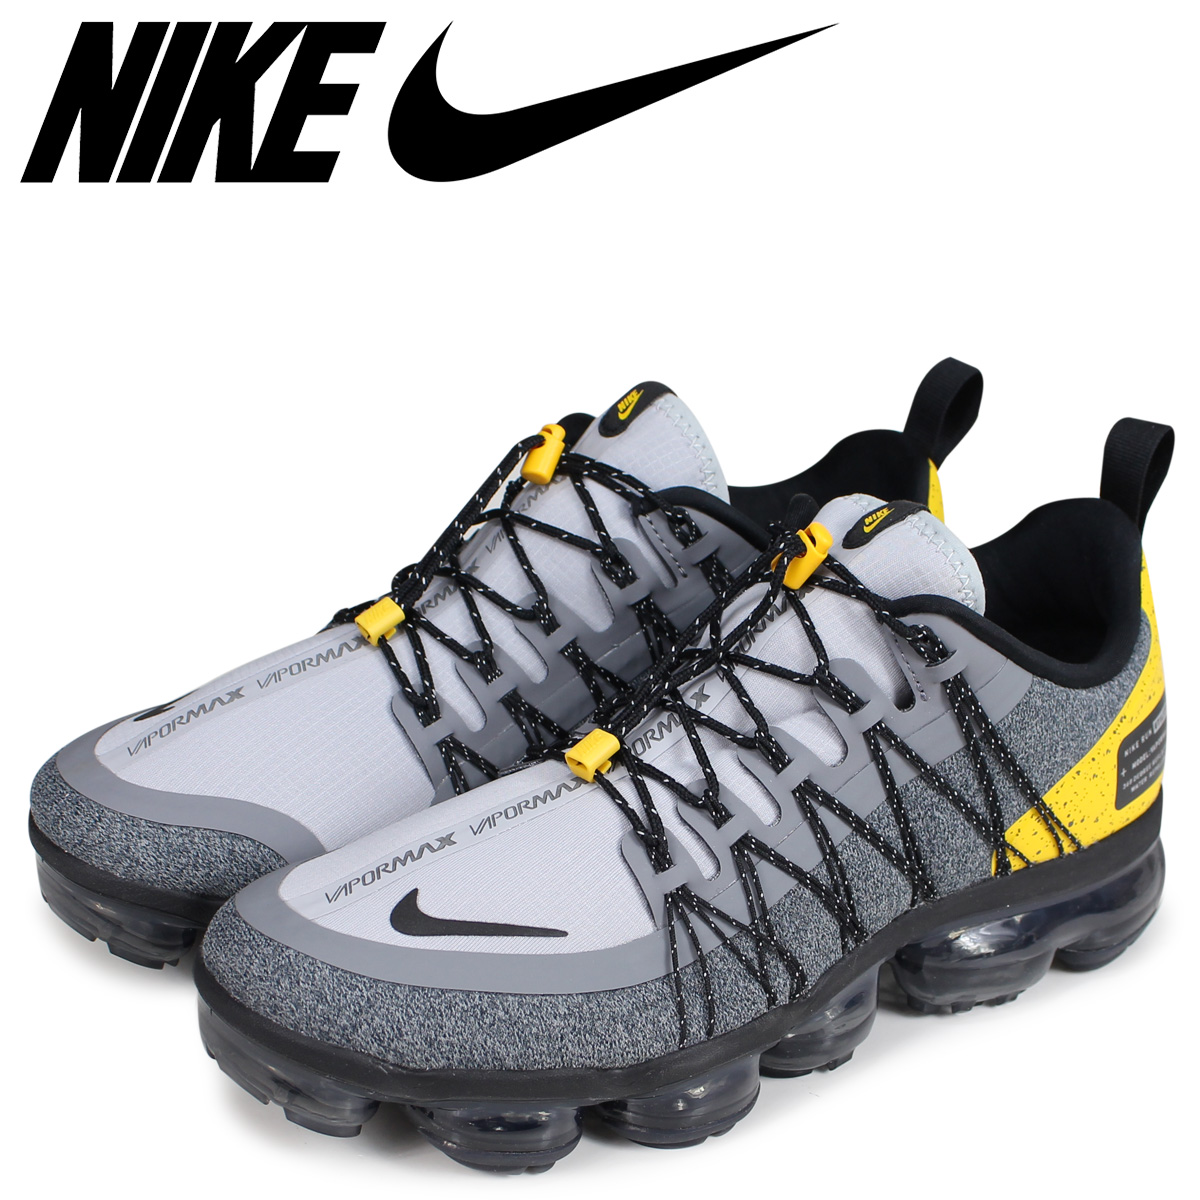 8103ea83ed3 NIKE Nike air vapor max sneakers men AIR VAPORMAX RUN UTILITY gray AQ8810- 010  2 19 Shinnyu load